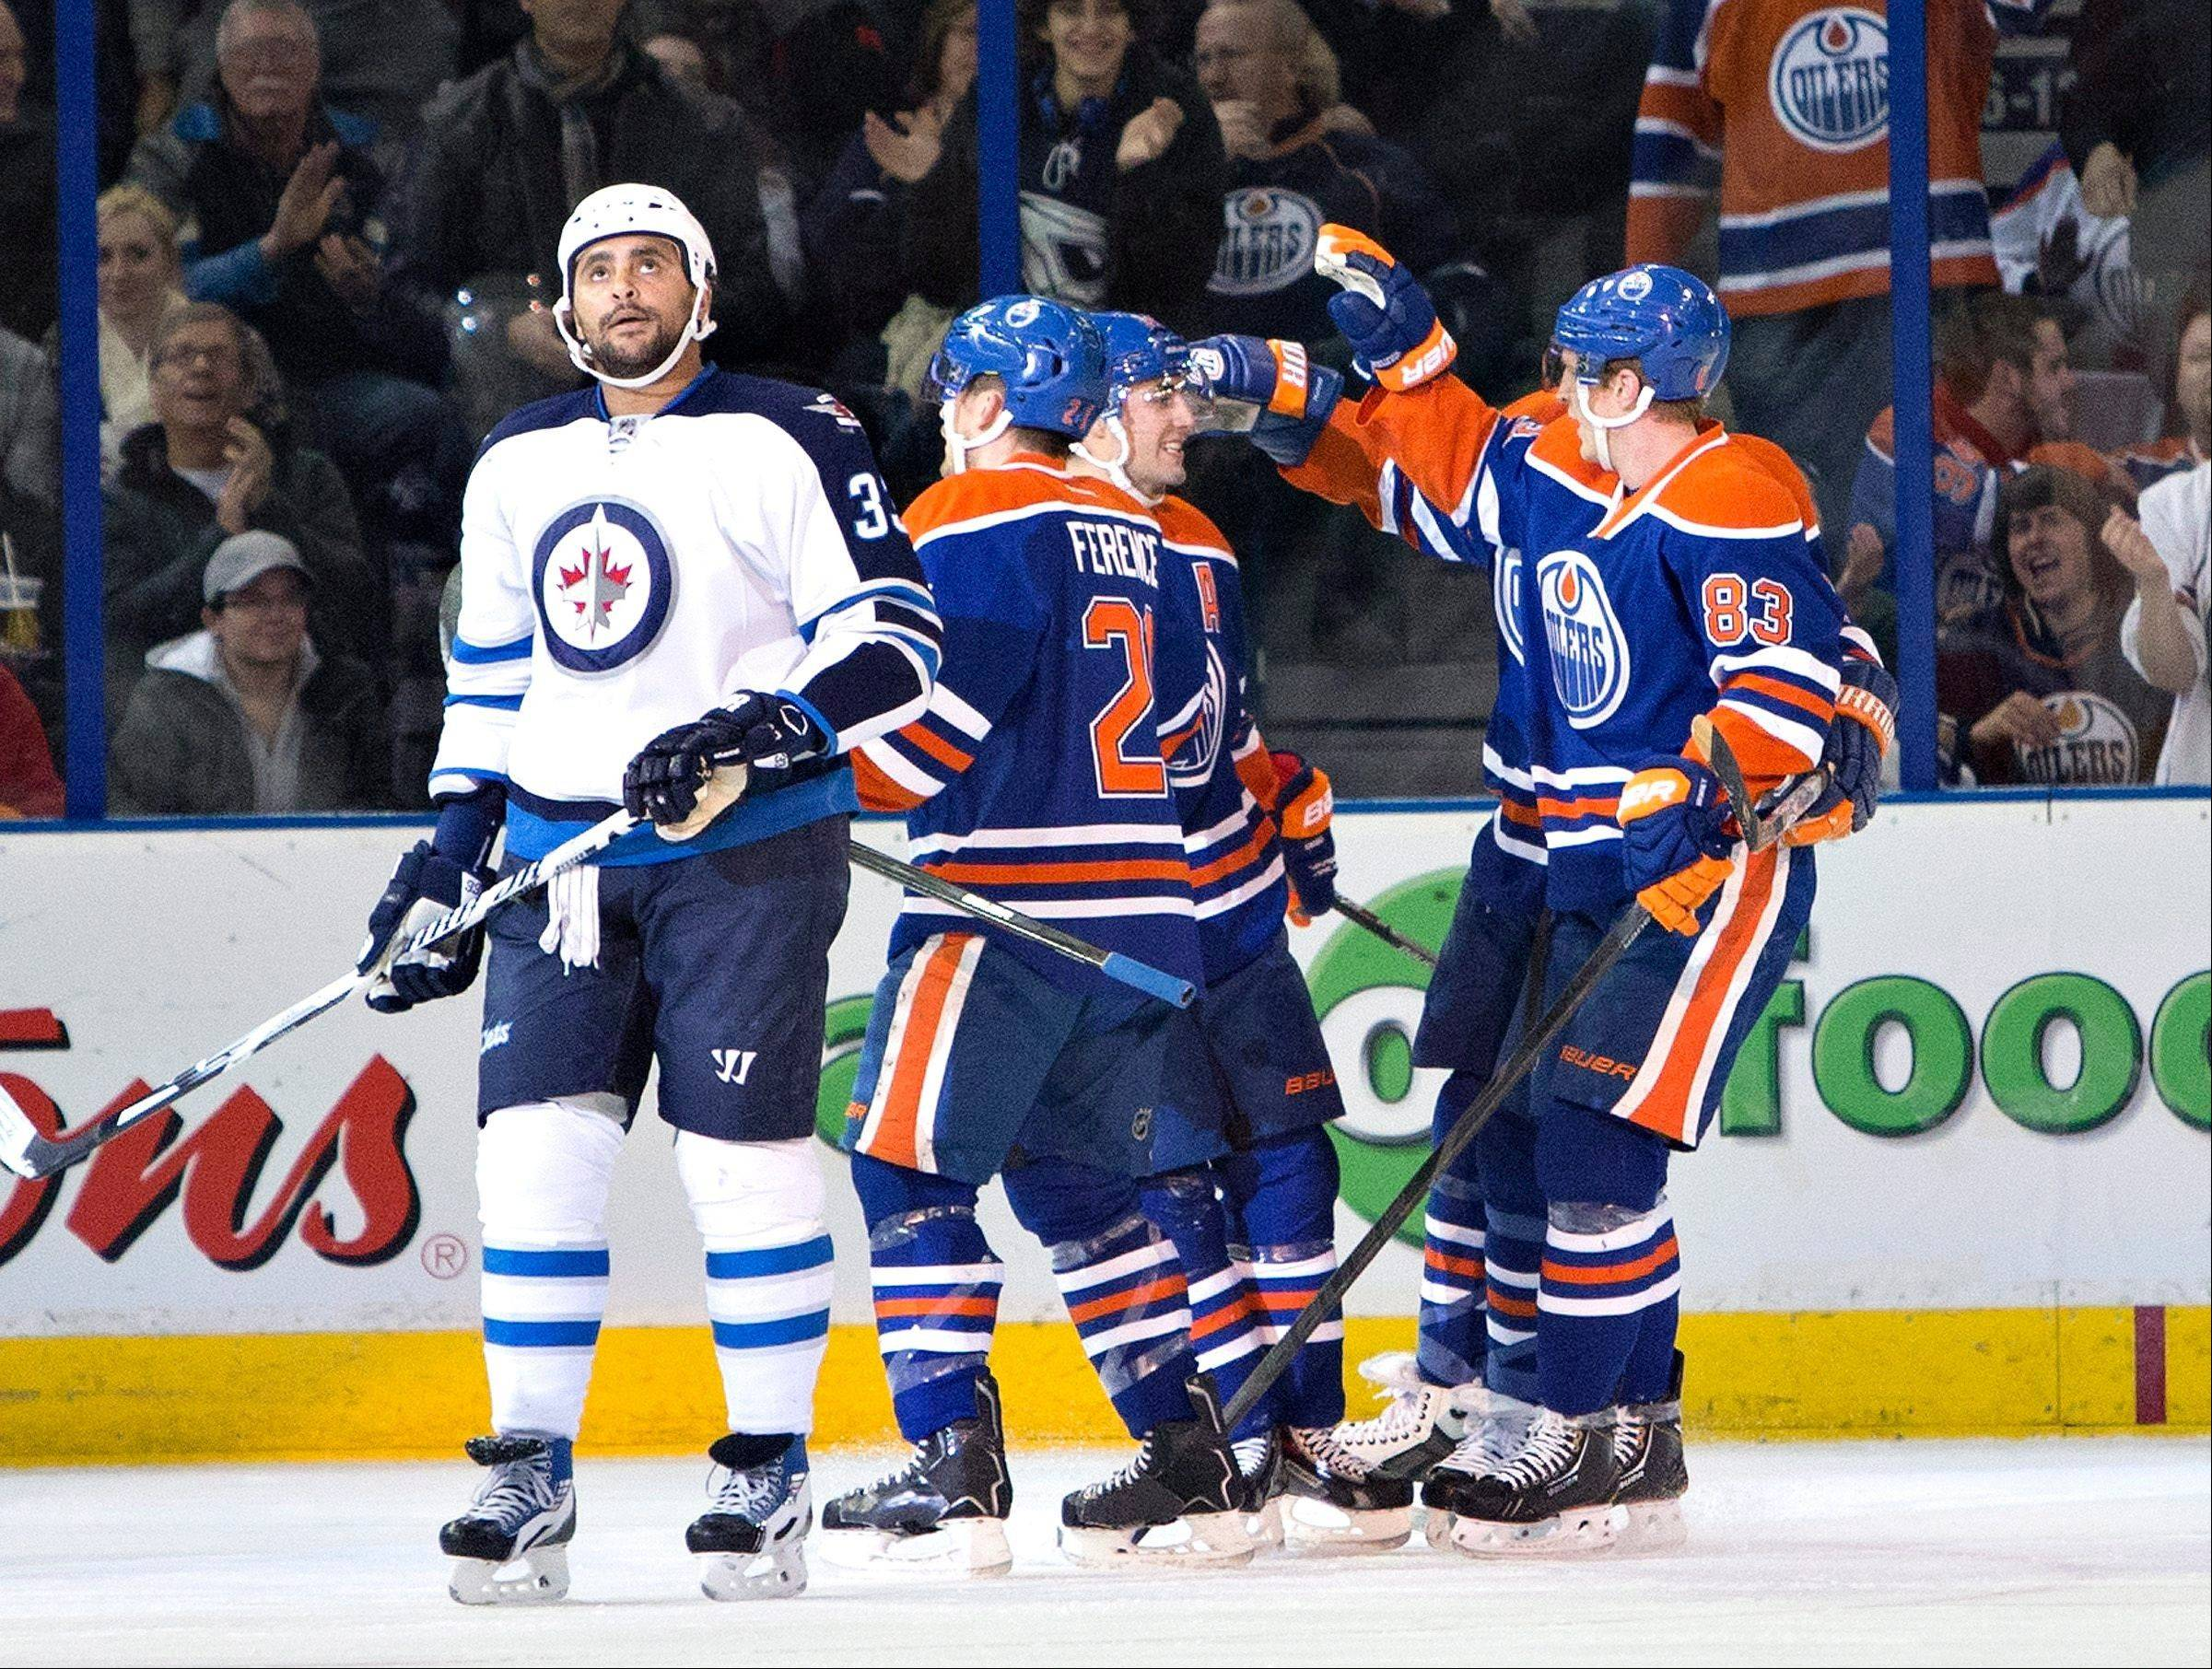 Winnipeg�s Dustin Byfuglien skates away as Edmonton�s Andrew Ference (21), Jordan Eberle (14) and Ales Hemsky (83) celebrate a goal during the first period of Monday�s game in Edmonton, Alberta.